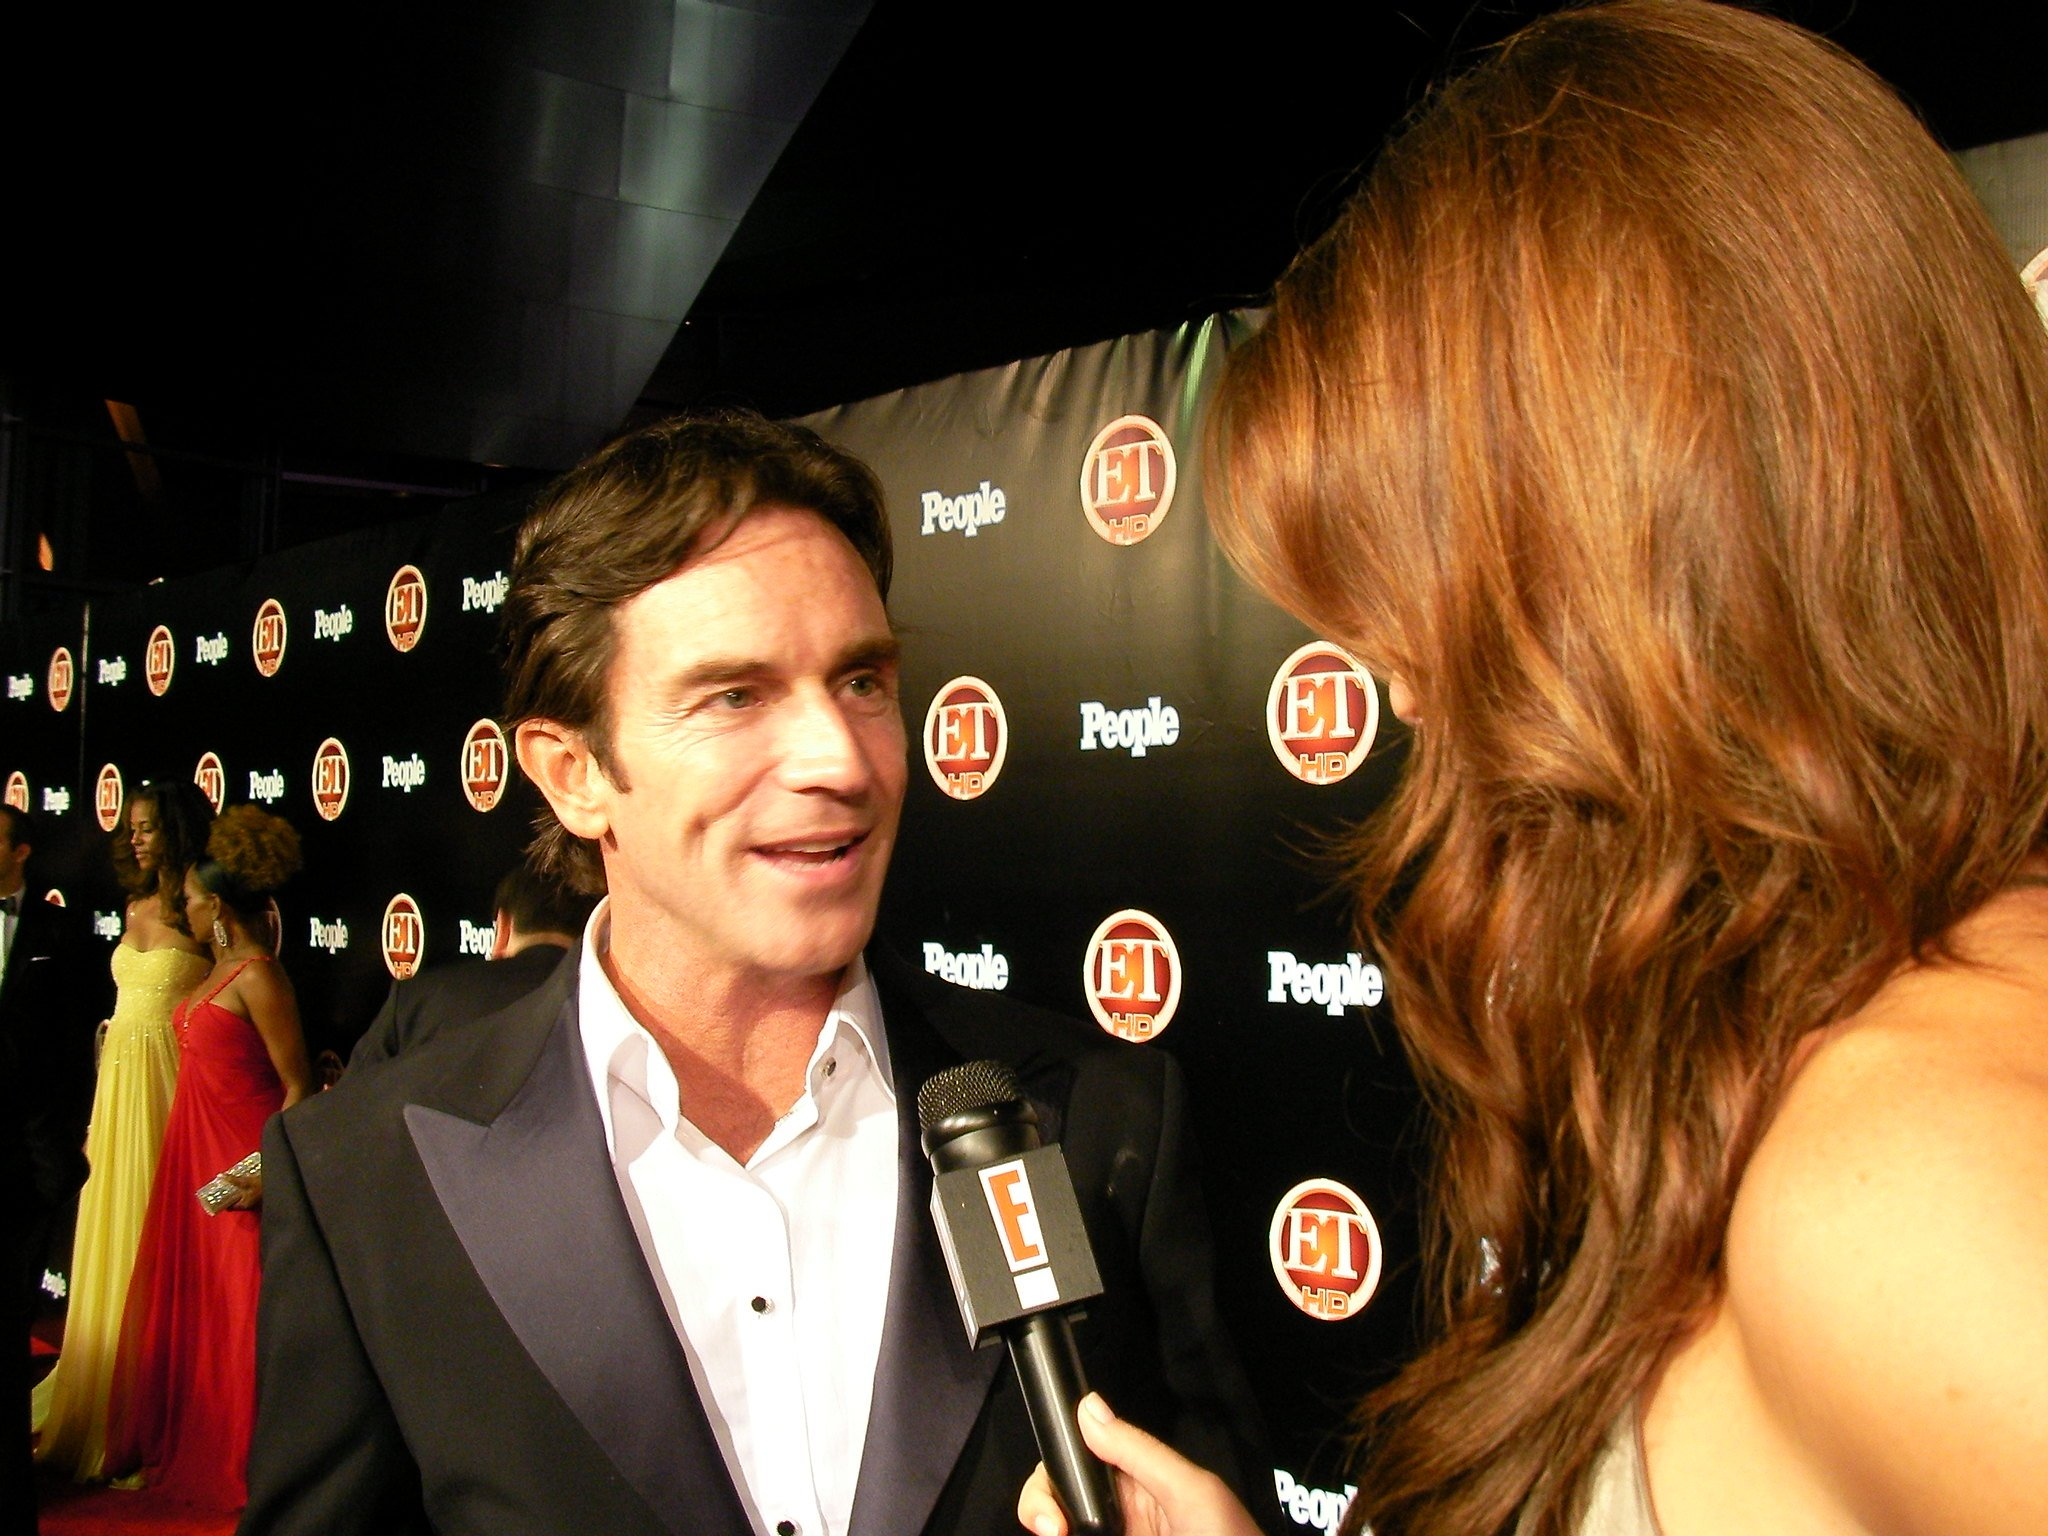 Jeff Probst at the Post-Emmys Party held at the Walt Disney Concert Hall on September 21, 2008 | Photo: Flickr/Kristin Dos Santos